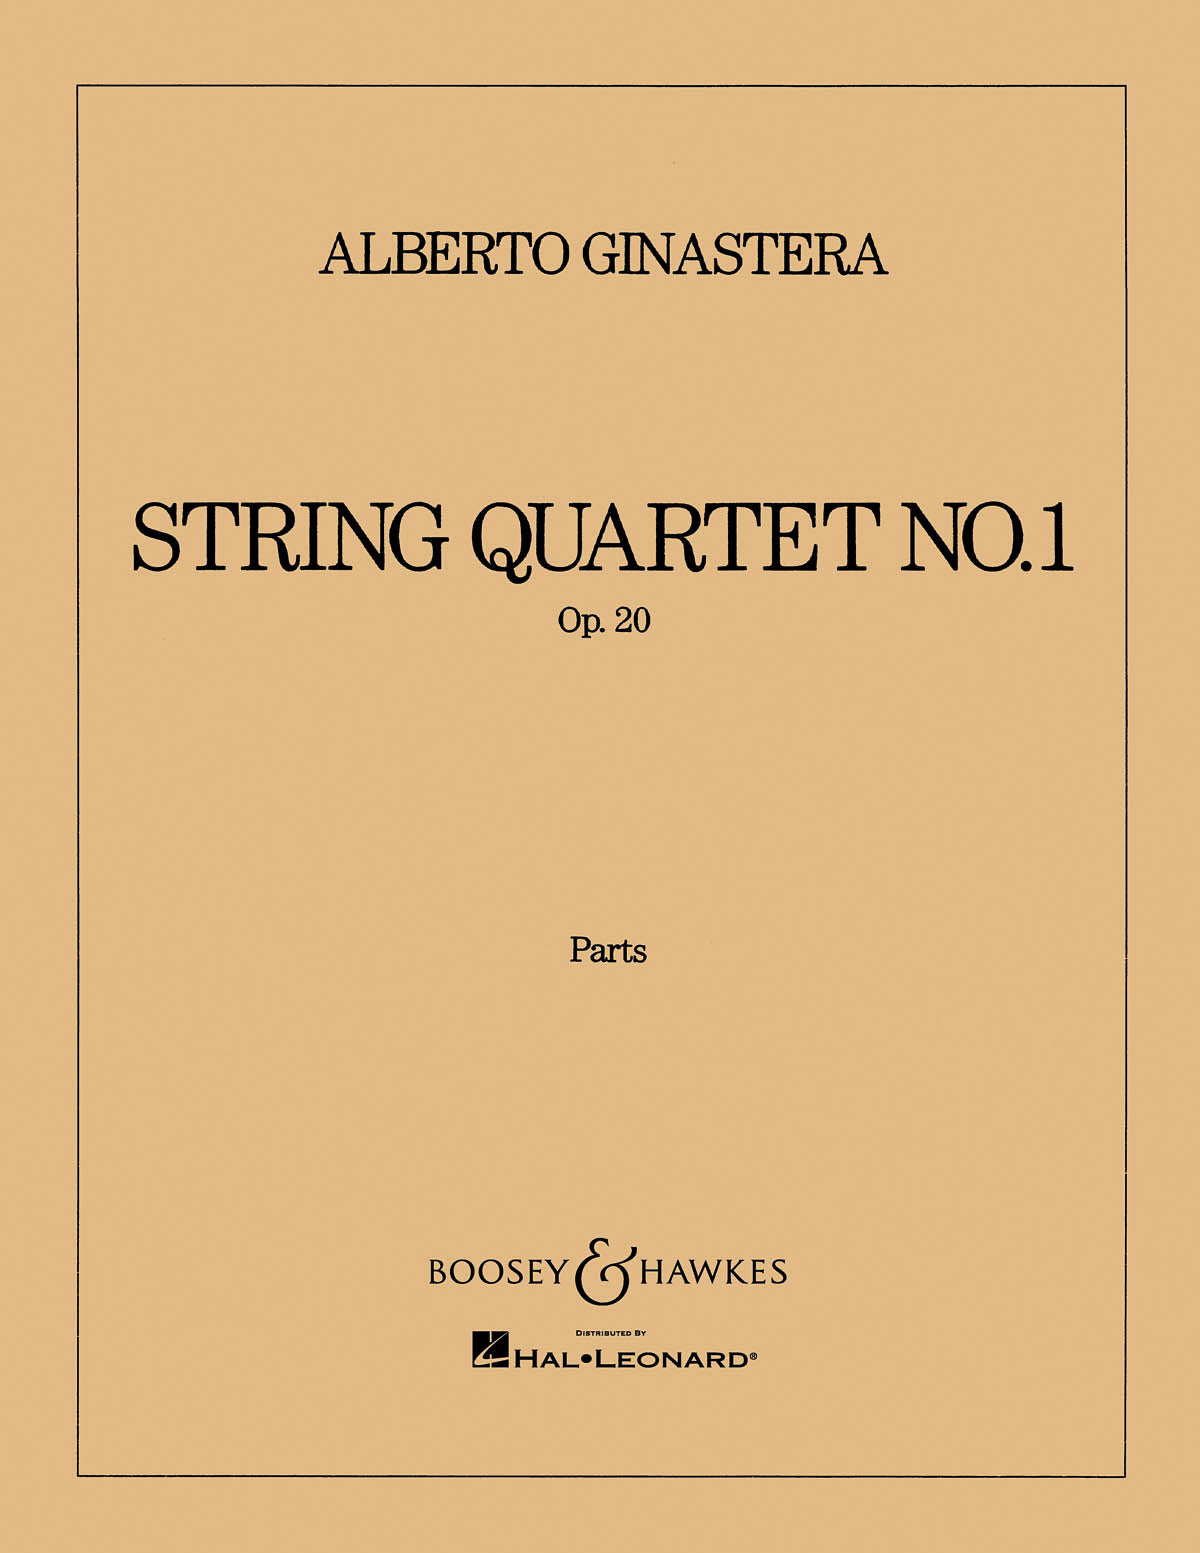 Ginastera: String Quartet No. 1, Op. 20